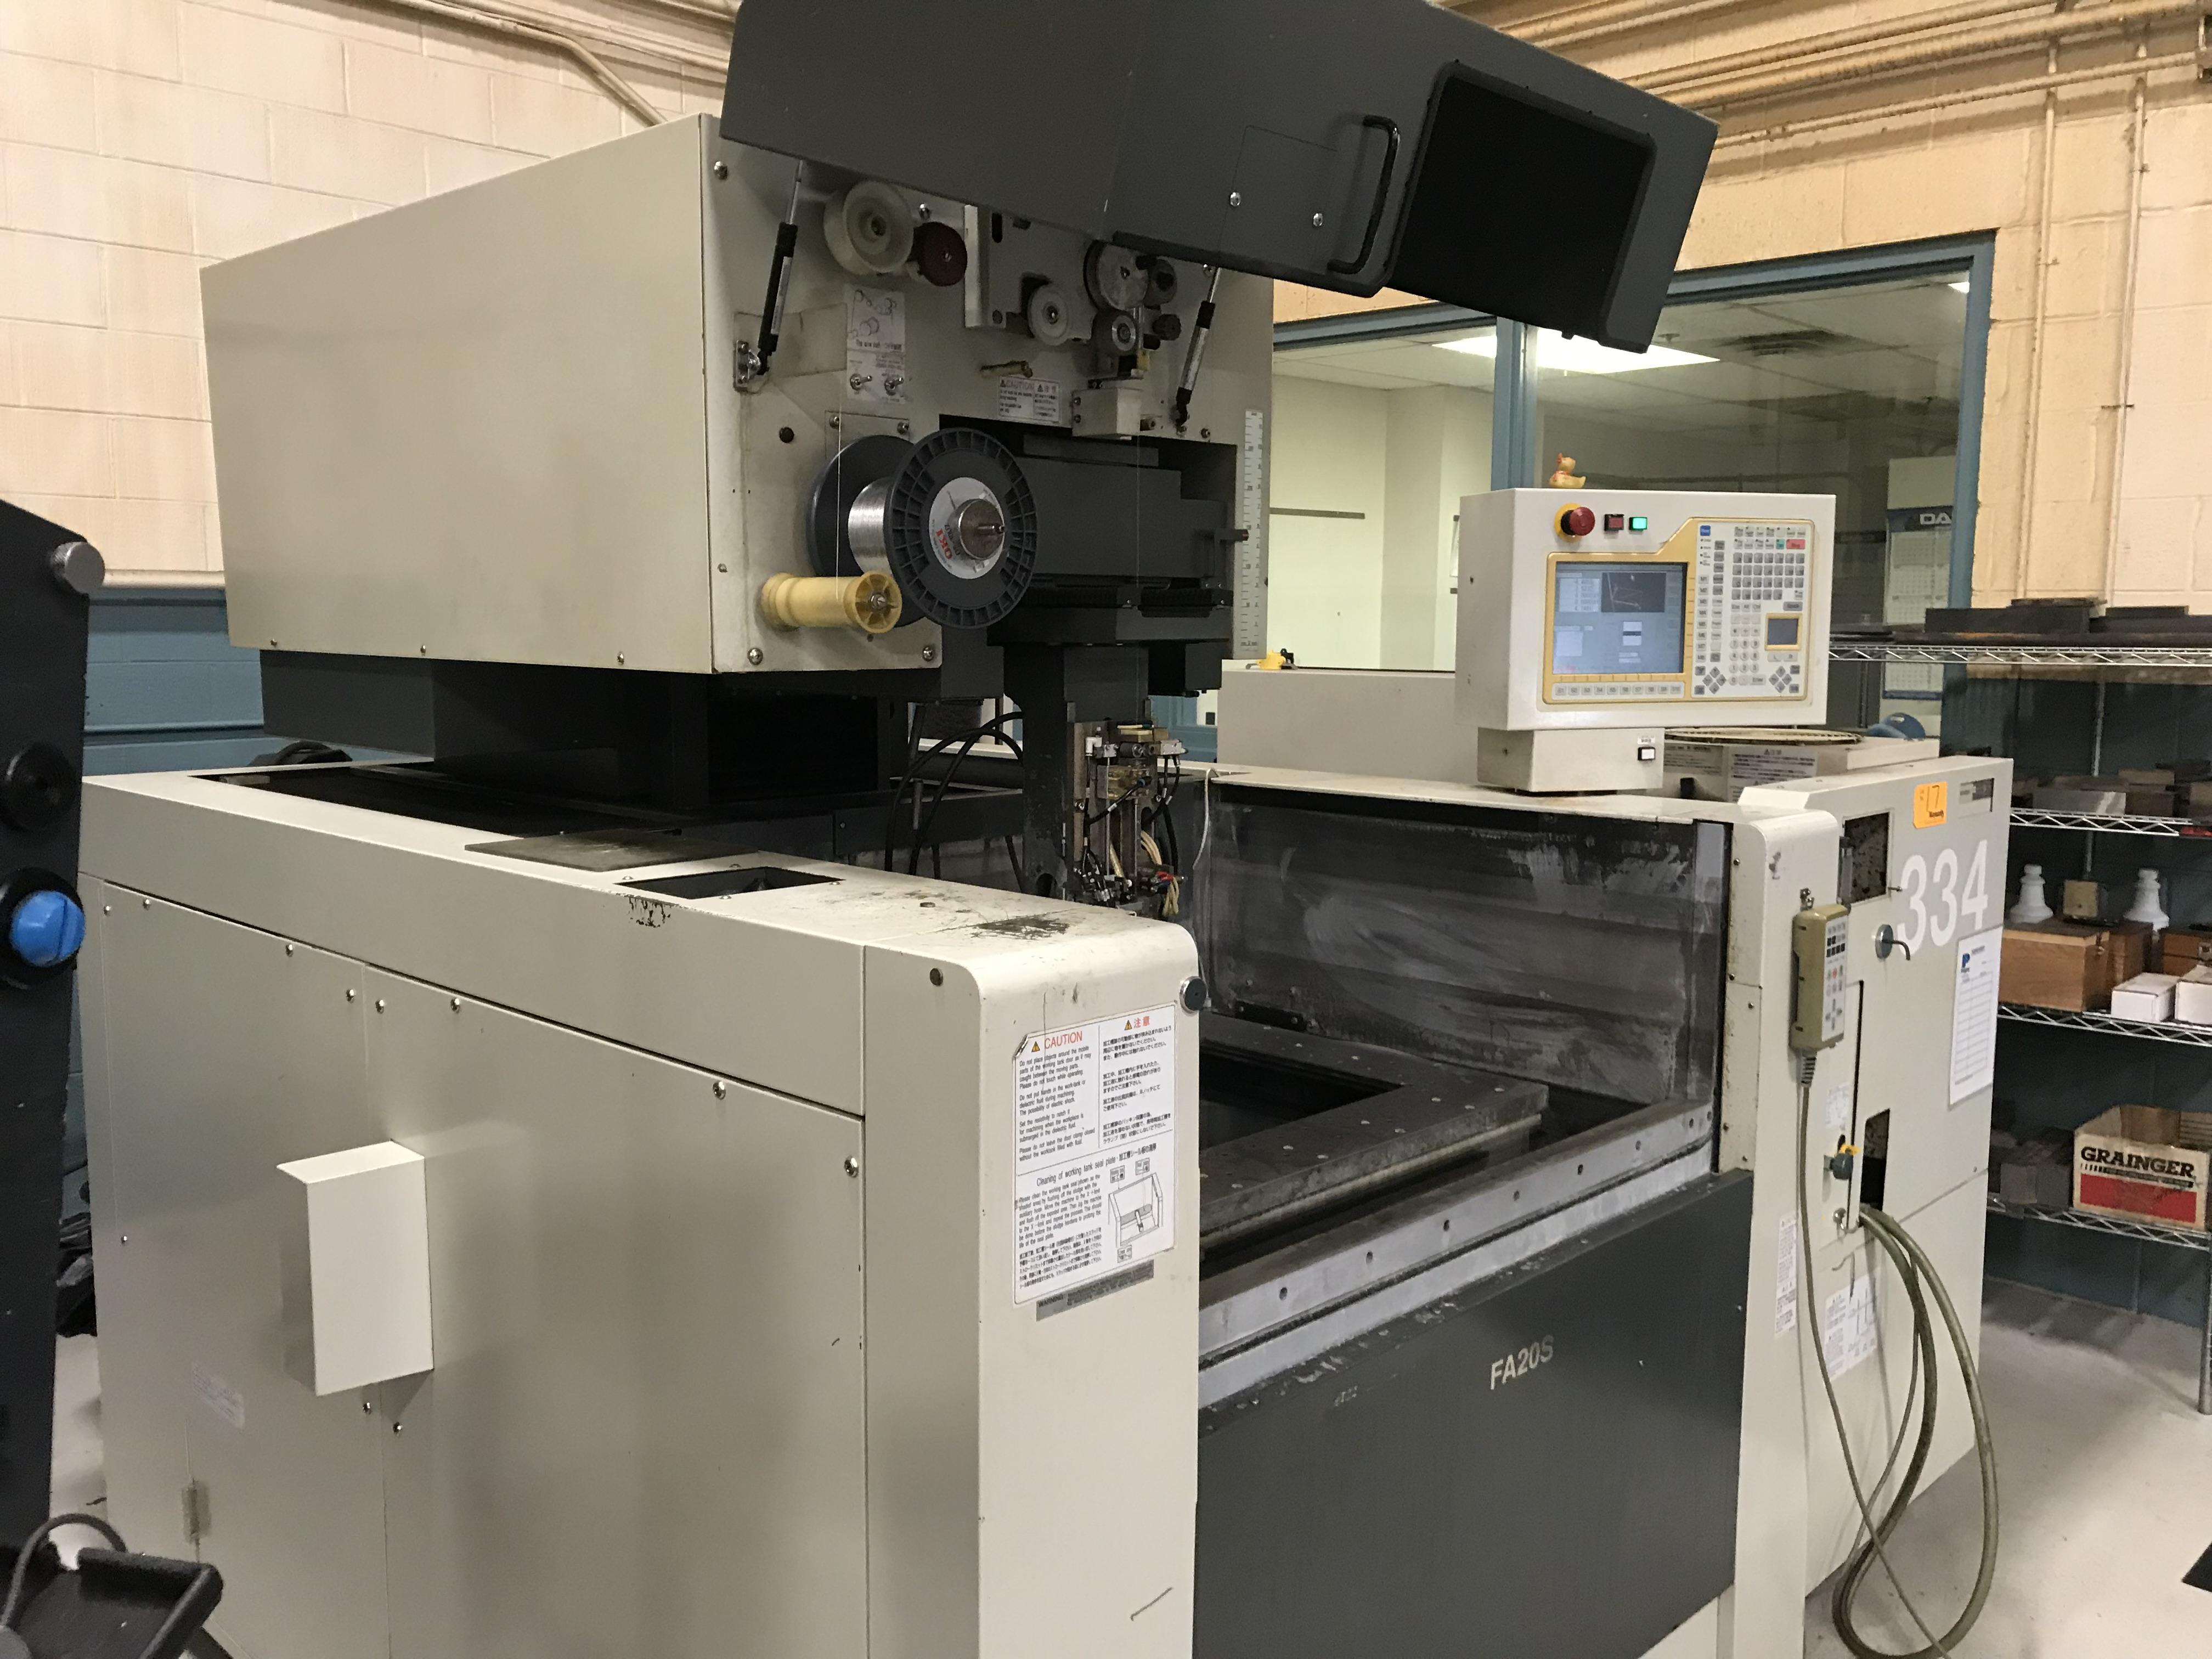 "Mitsubishi FA20S CNC Wire EDM, Mits Control, 19.7""/13.8""/11.8"" Travels, Submerged, Auto Threading, 30.7"" x 24.8"" Table, 3300 Lb Capacity, 2007"